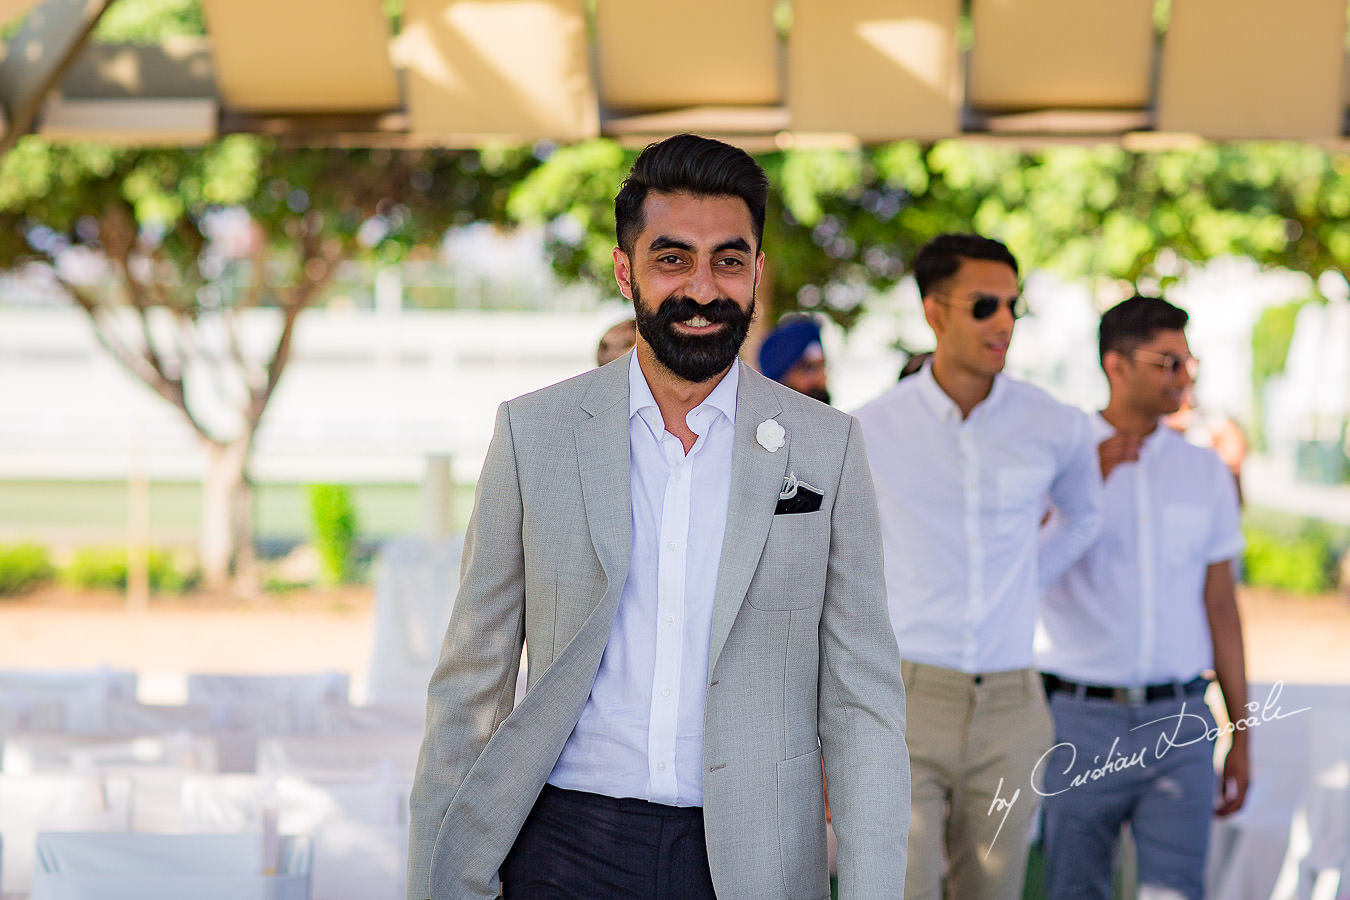 The groom arriving for the wedding ceremony, moments photographed by Cristian Dascalu at Athena Beach Hotel in Paphos, Cyprus, during a symbolic wedding.